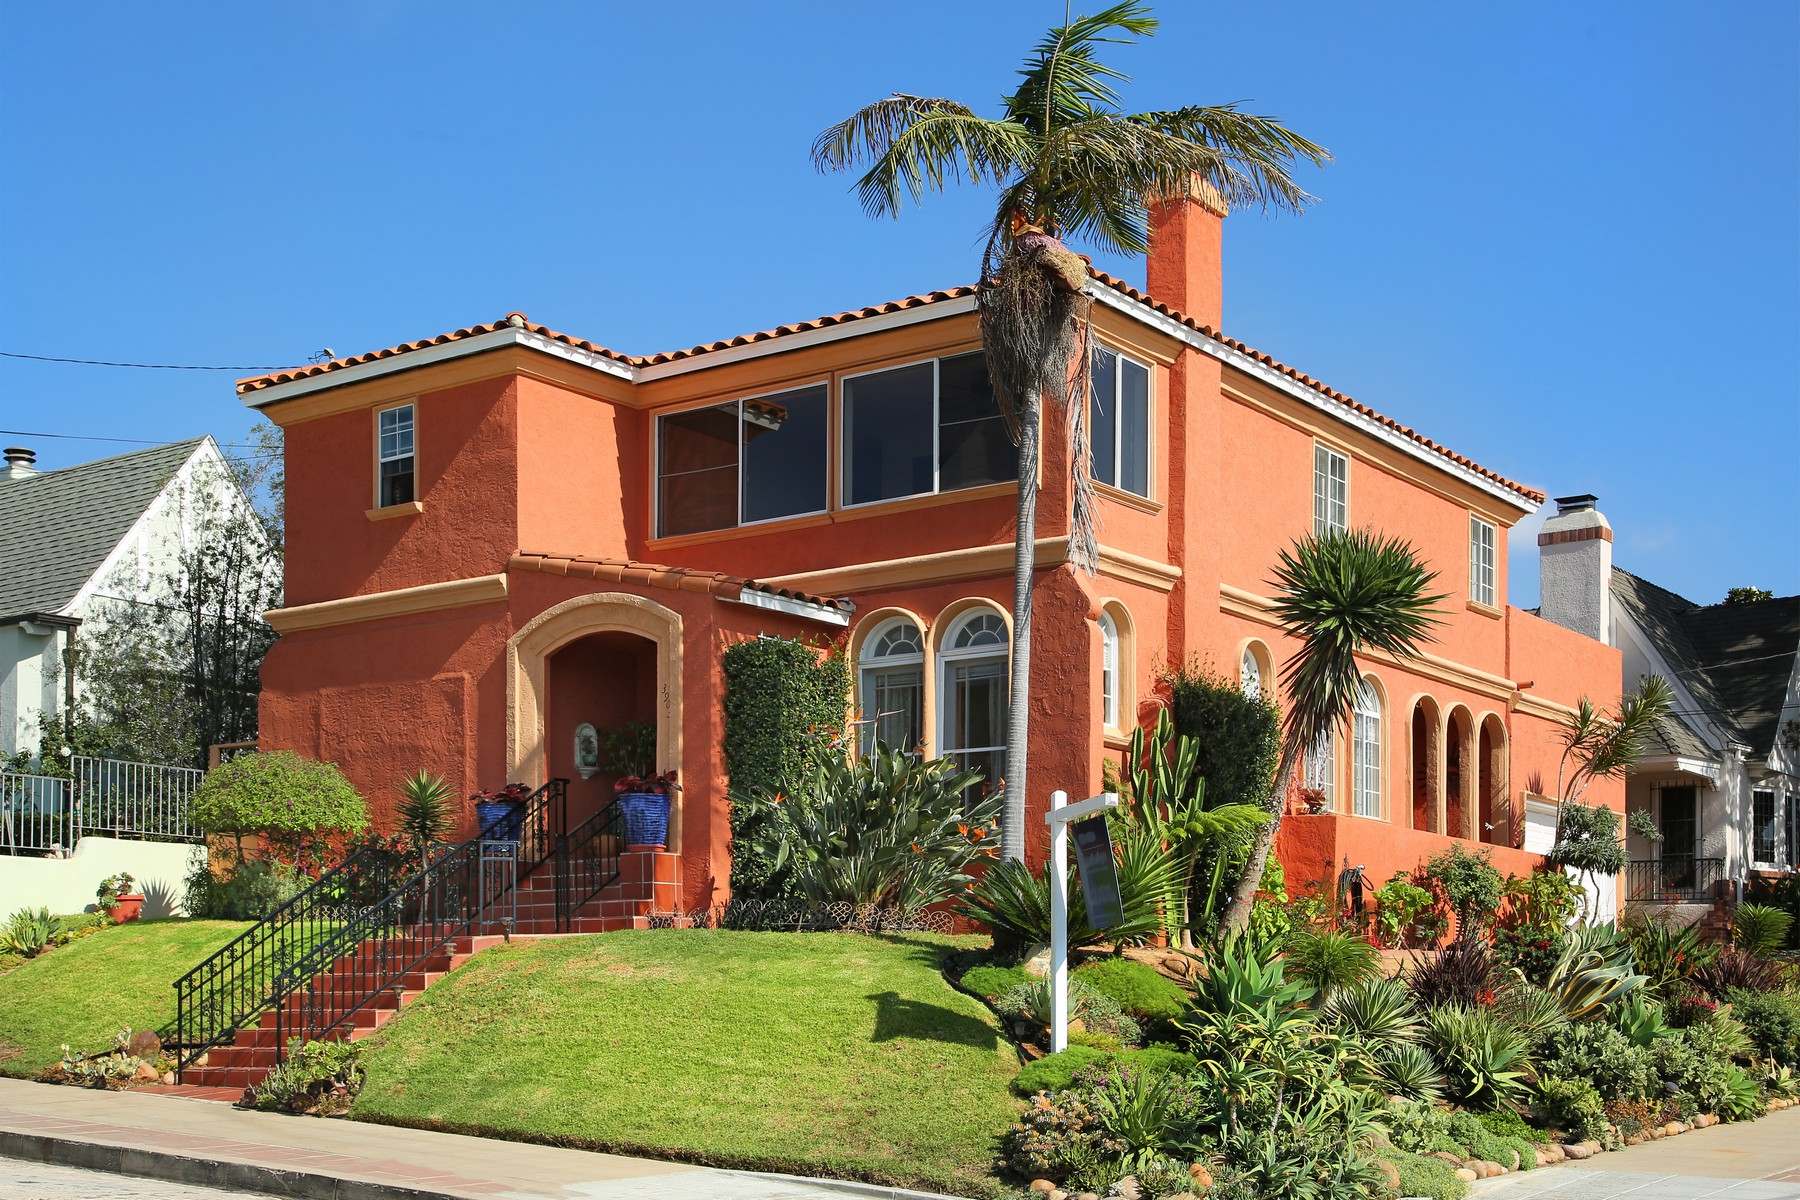 Single Family Home for Sale at 3903 Alameda 3903 Alameda Place San Diego, California 92103 United States